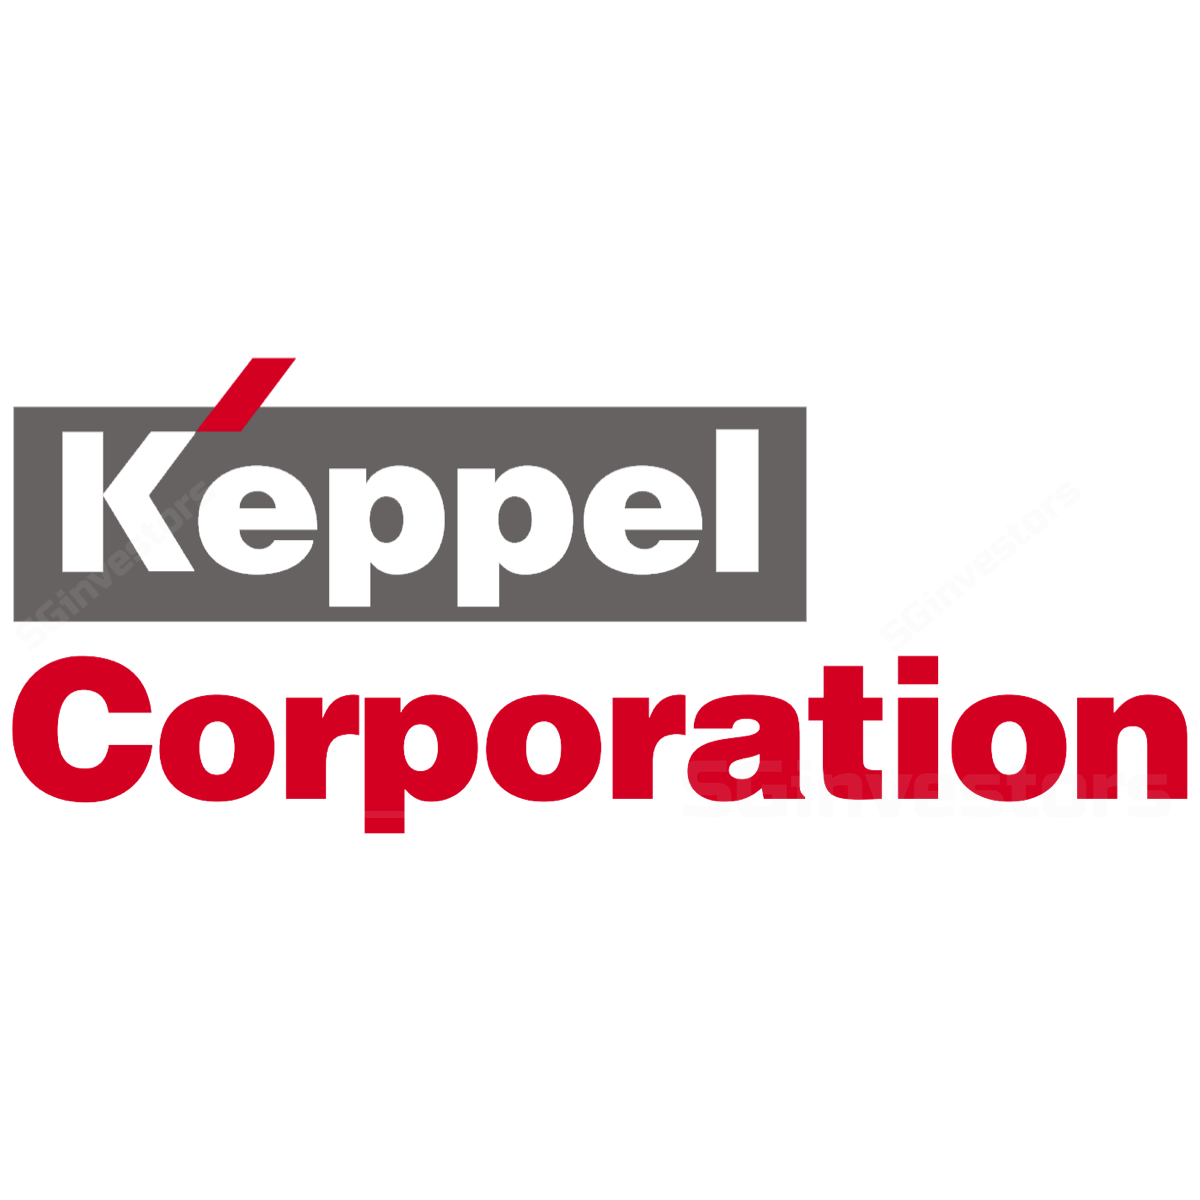 Keppel Corporation - CIMB Research 2017-10-12: Unearthing Gems